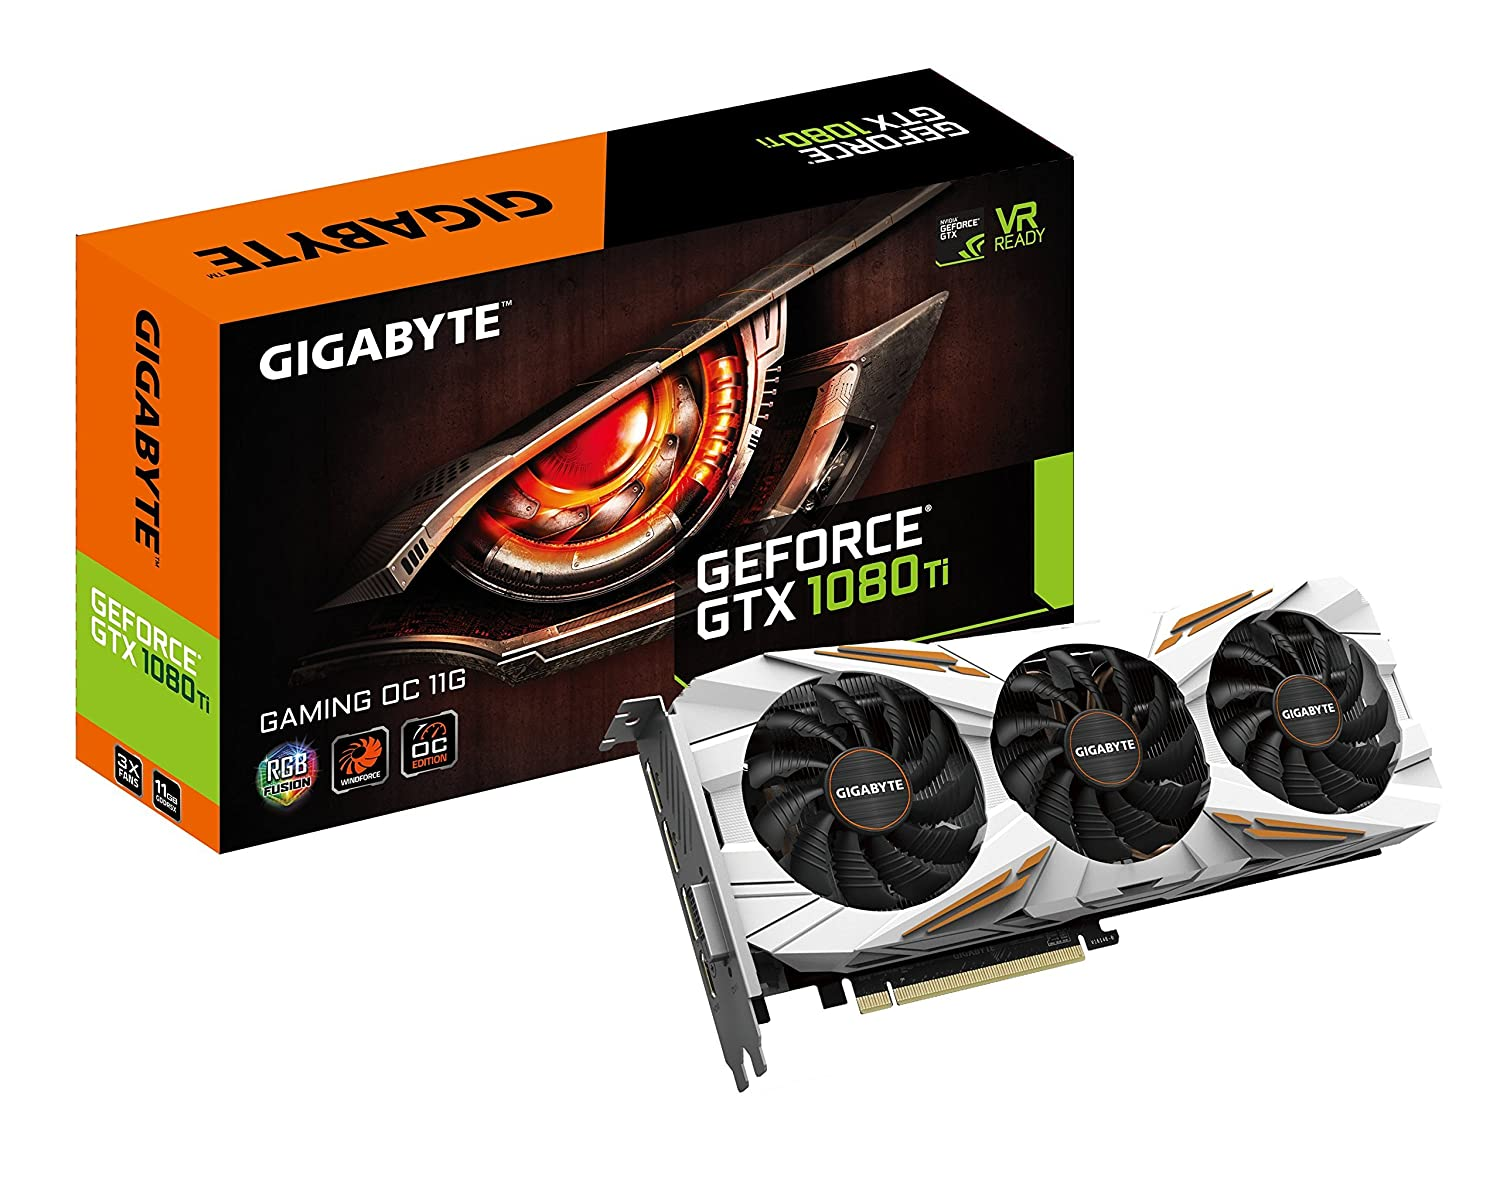 Gigabyte GeForce GTX 1080 Ti Gaming OC 11GB Graphic Cards N108TGAMINGOC-11GD (Renewed)